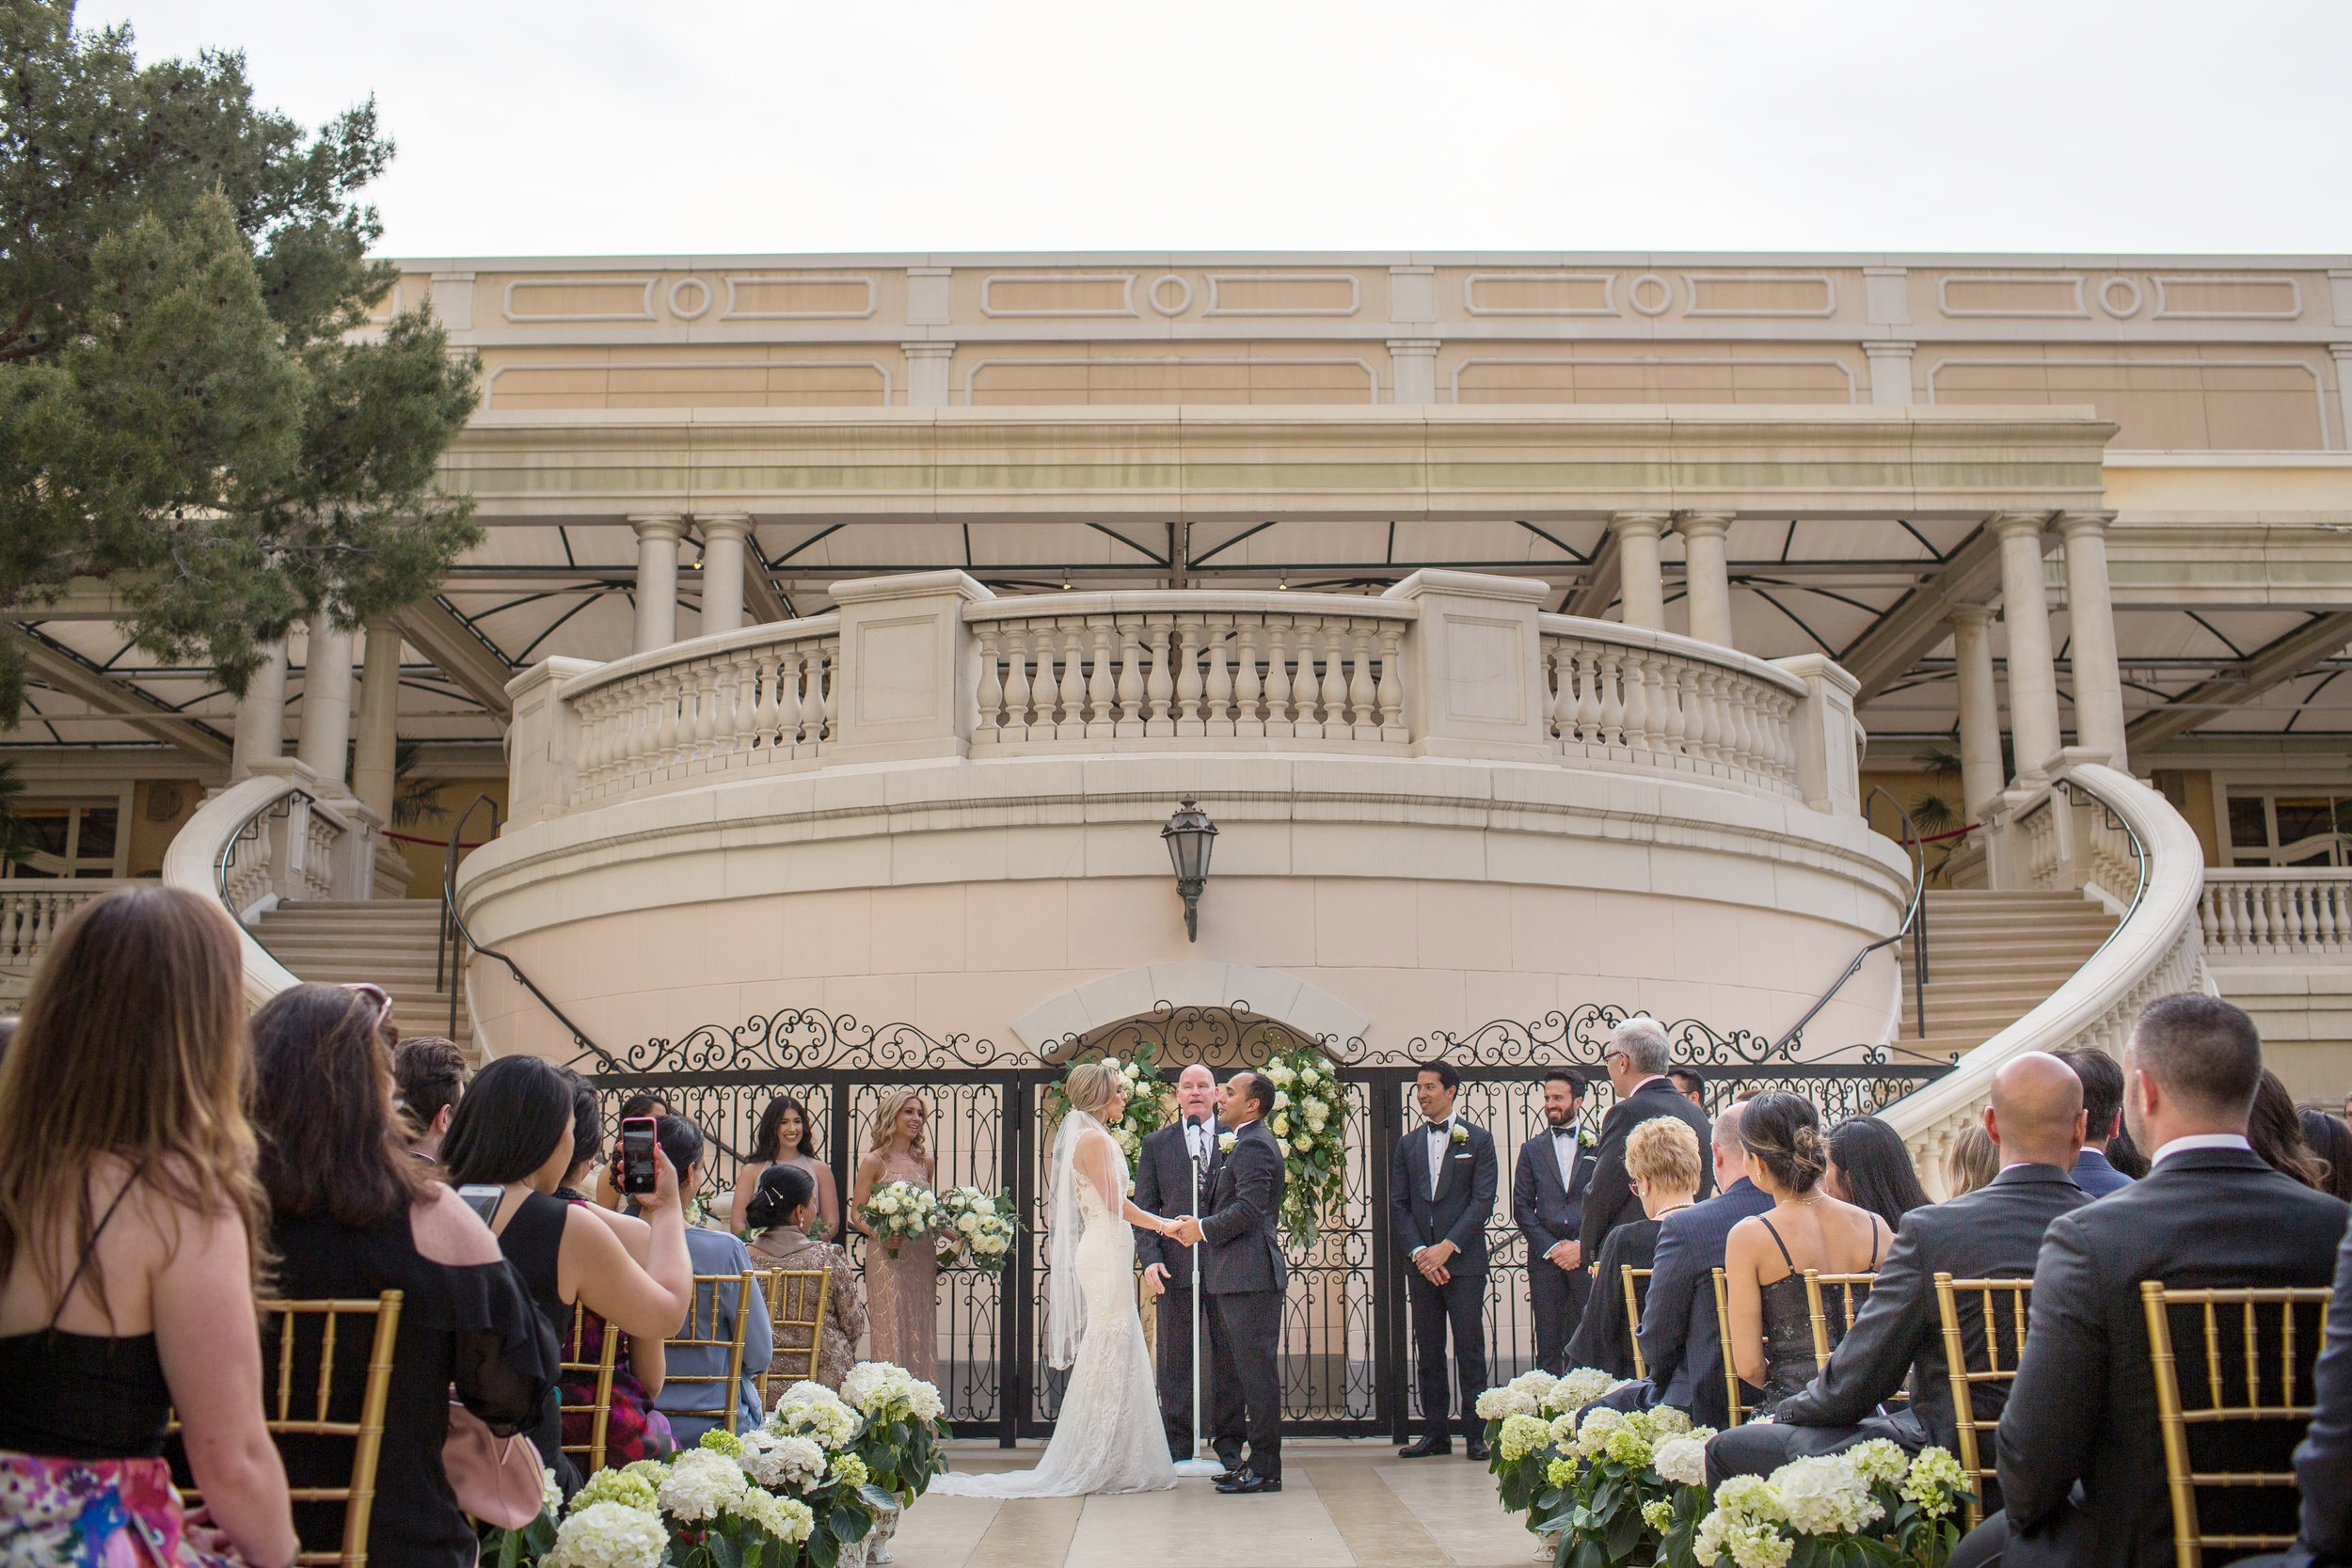 Outdoor wedding ceremony at Bellagio.Wedding Planner:  Andrea Eppolito Events   | Photography  D2 Tuscan Wedding Photography  | Videography  M Place Productions  | Venue & Catering:  Bellagio  | Floral & Decor:  Destinations by Design  | Lighting:  LED Unplugged   | Music: Classical Entertainment &  DJ Mike Fox  | Hair & Make Up:  Amelia C & Co